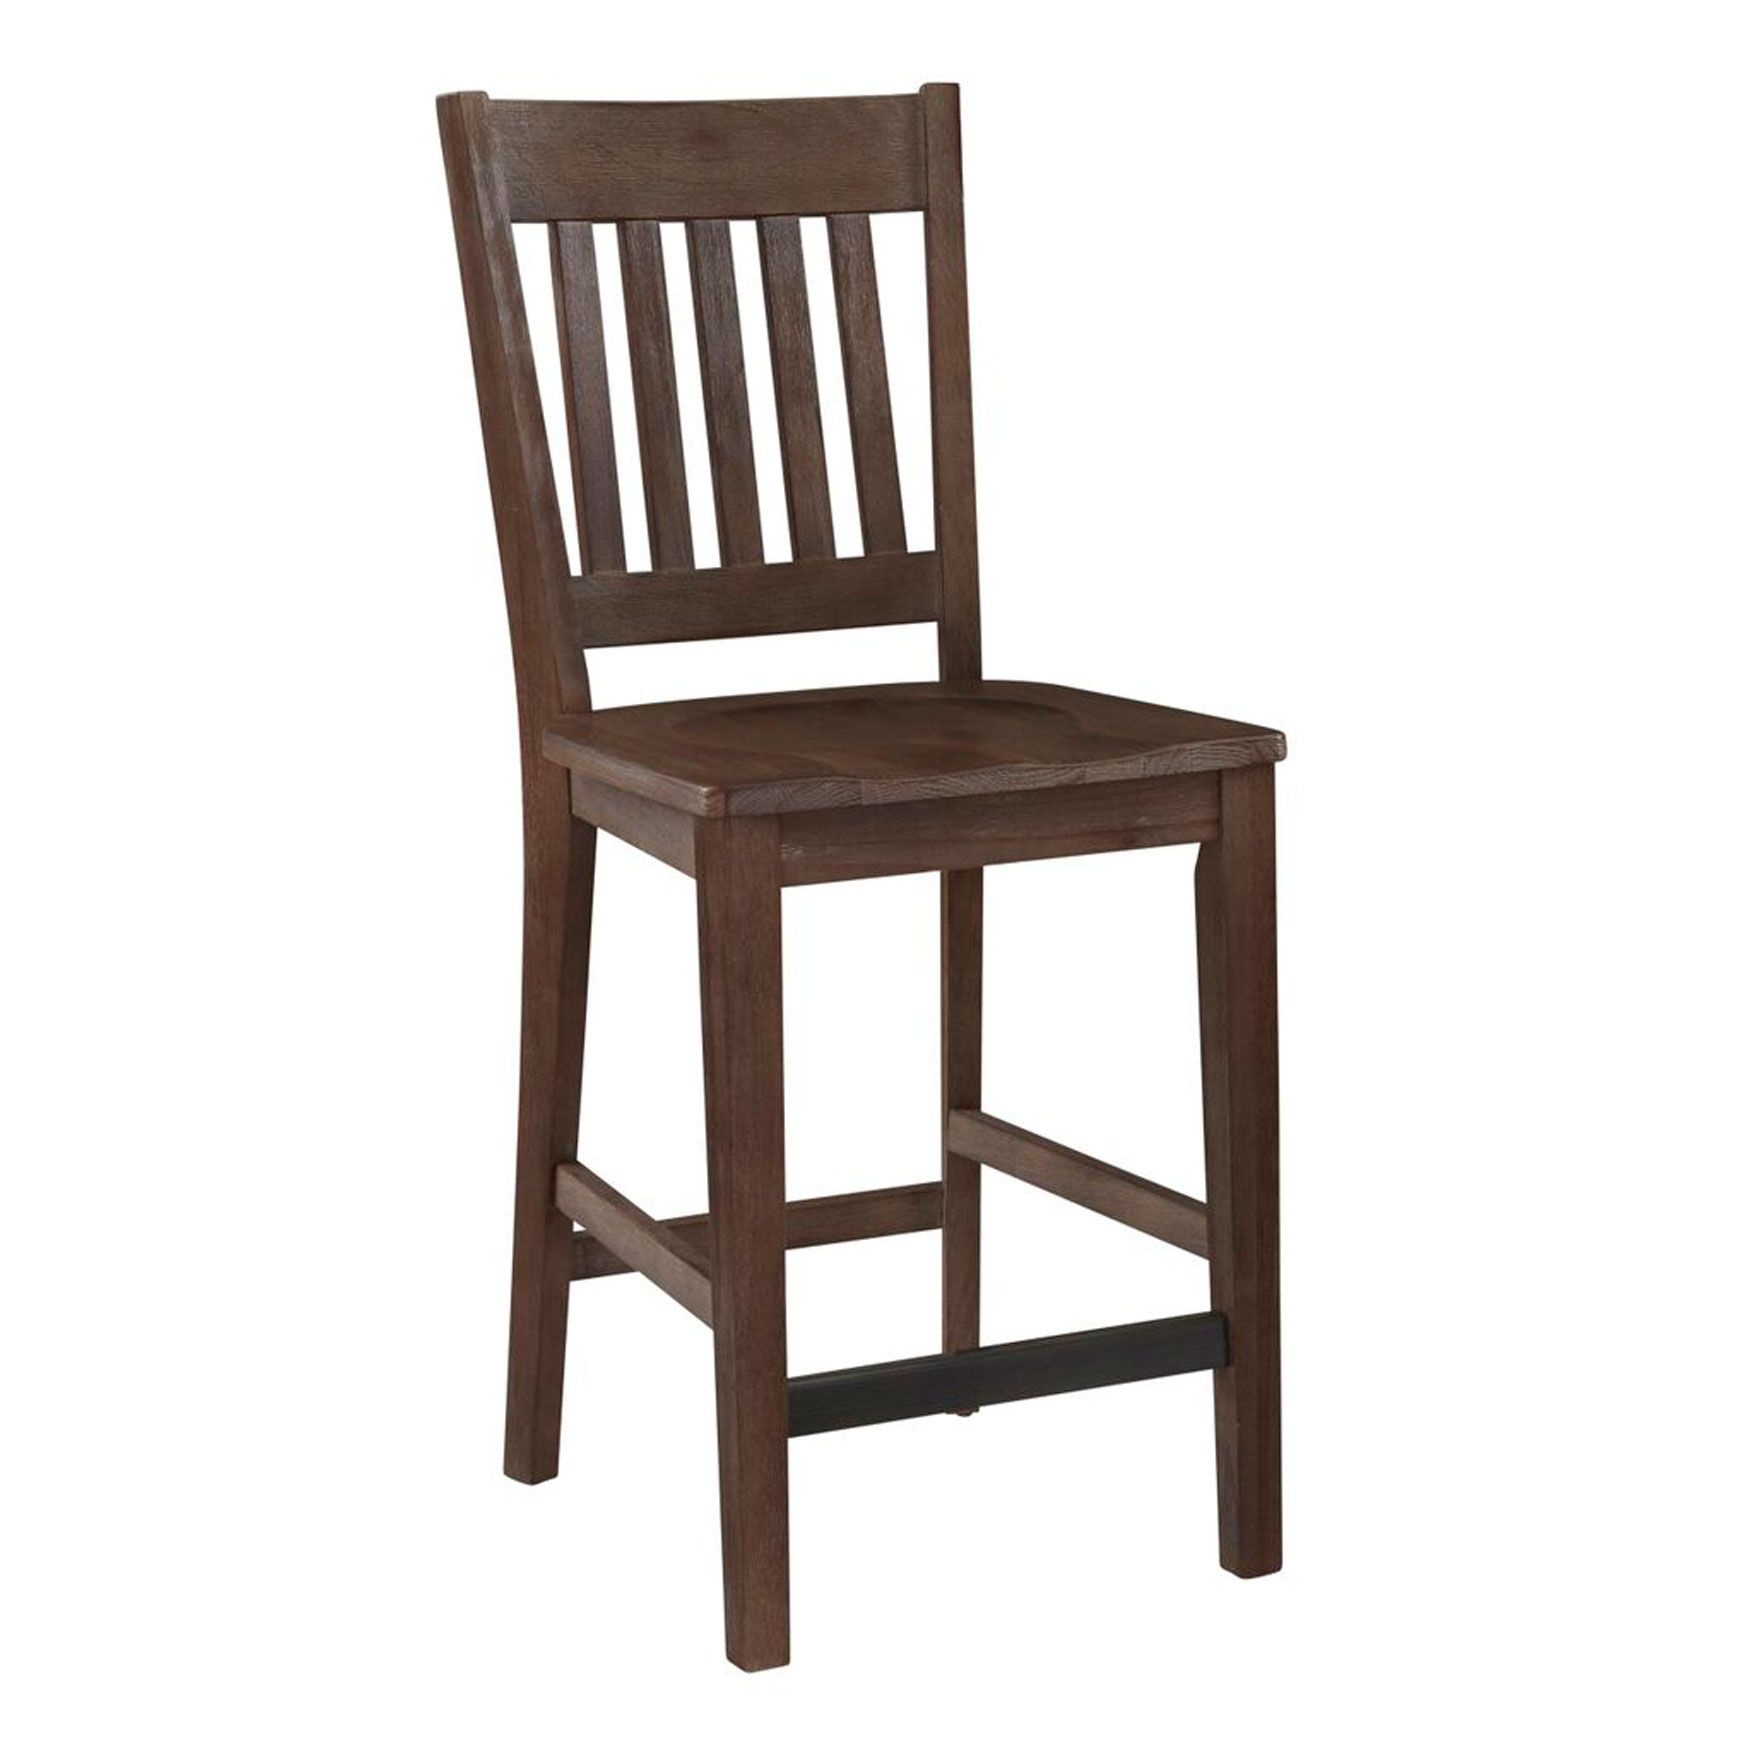 Barnside Bar Stool, BROWN